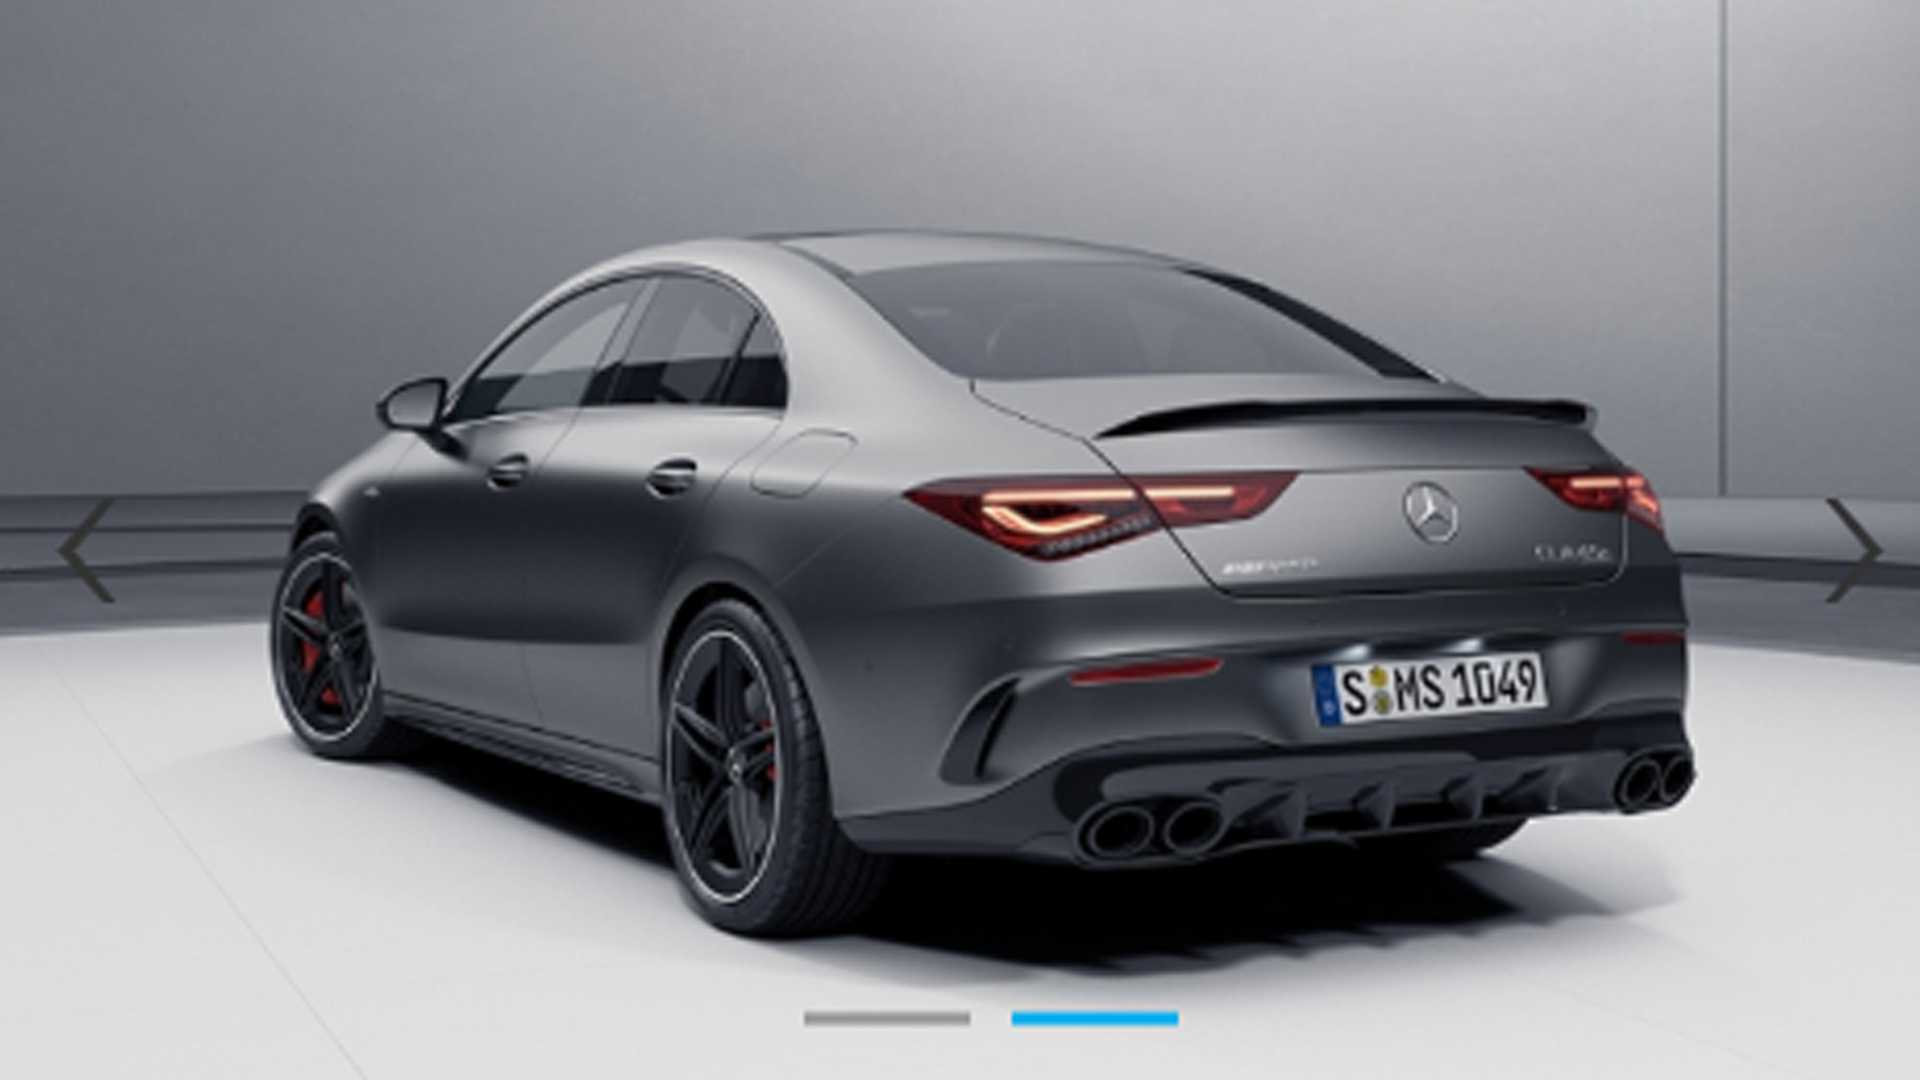 Whether by oversight or driven by an intention to arouse hype, Mercedes-Benz has let a photo of the upcoming Mercedes-AMG CLA 45 S leak ahead of the premiere